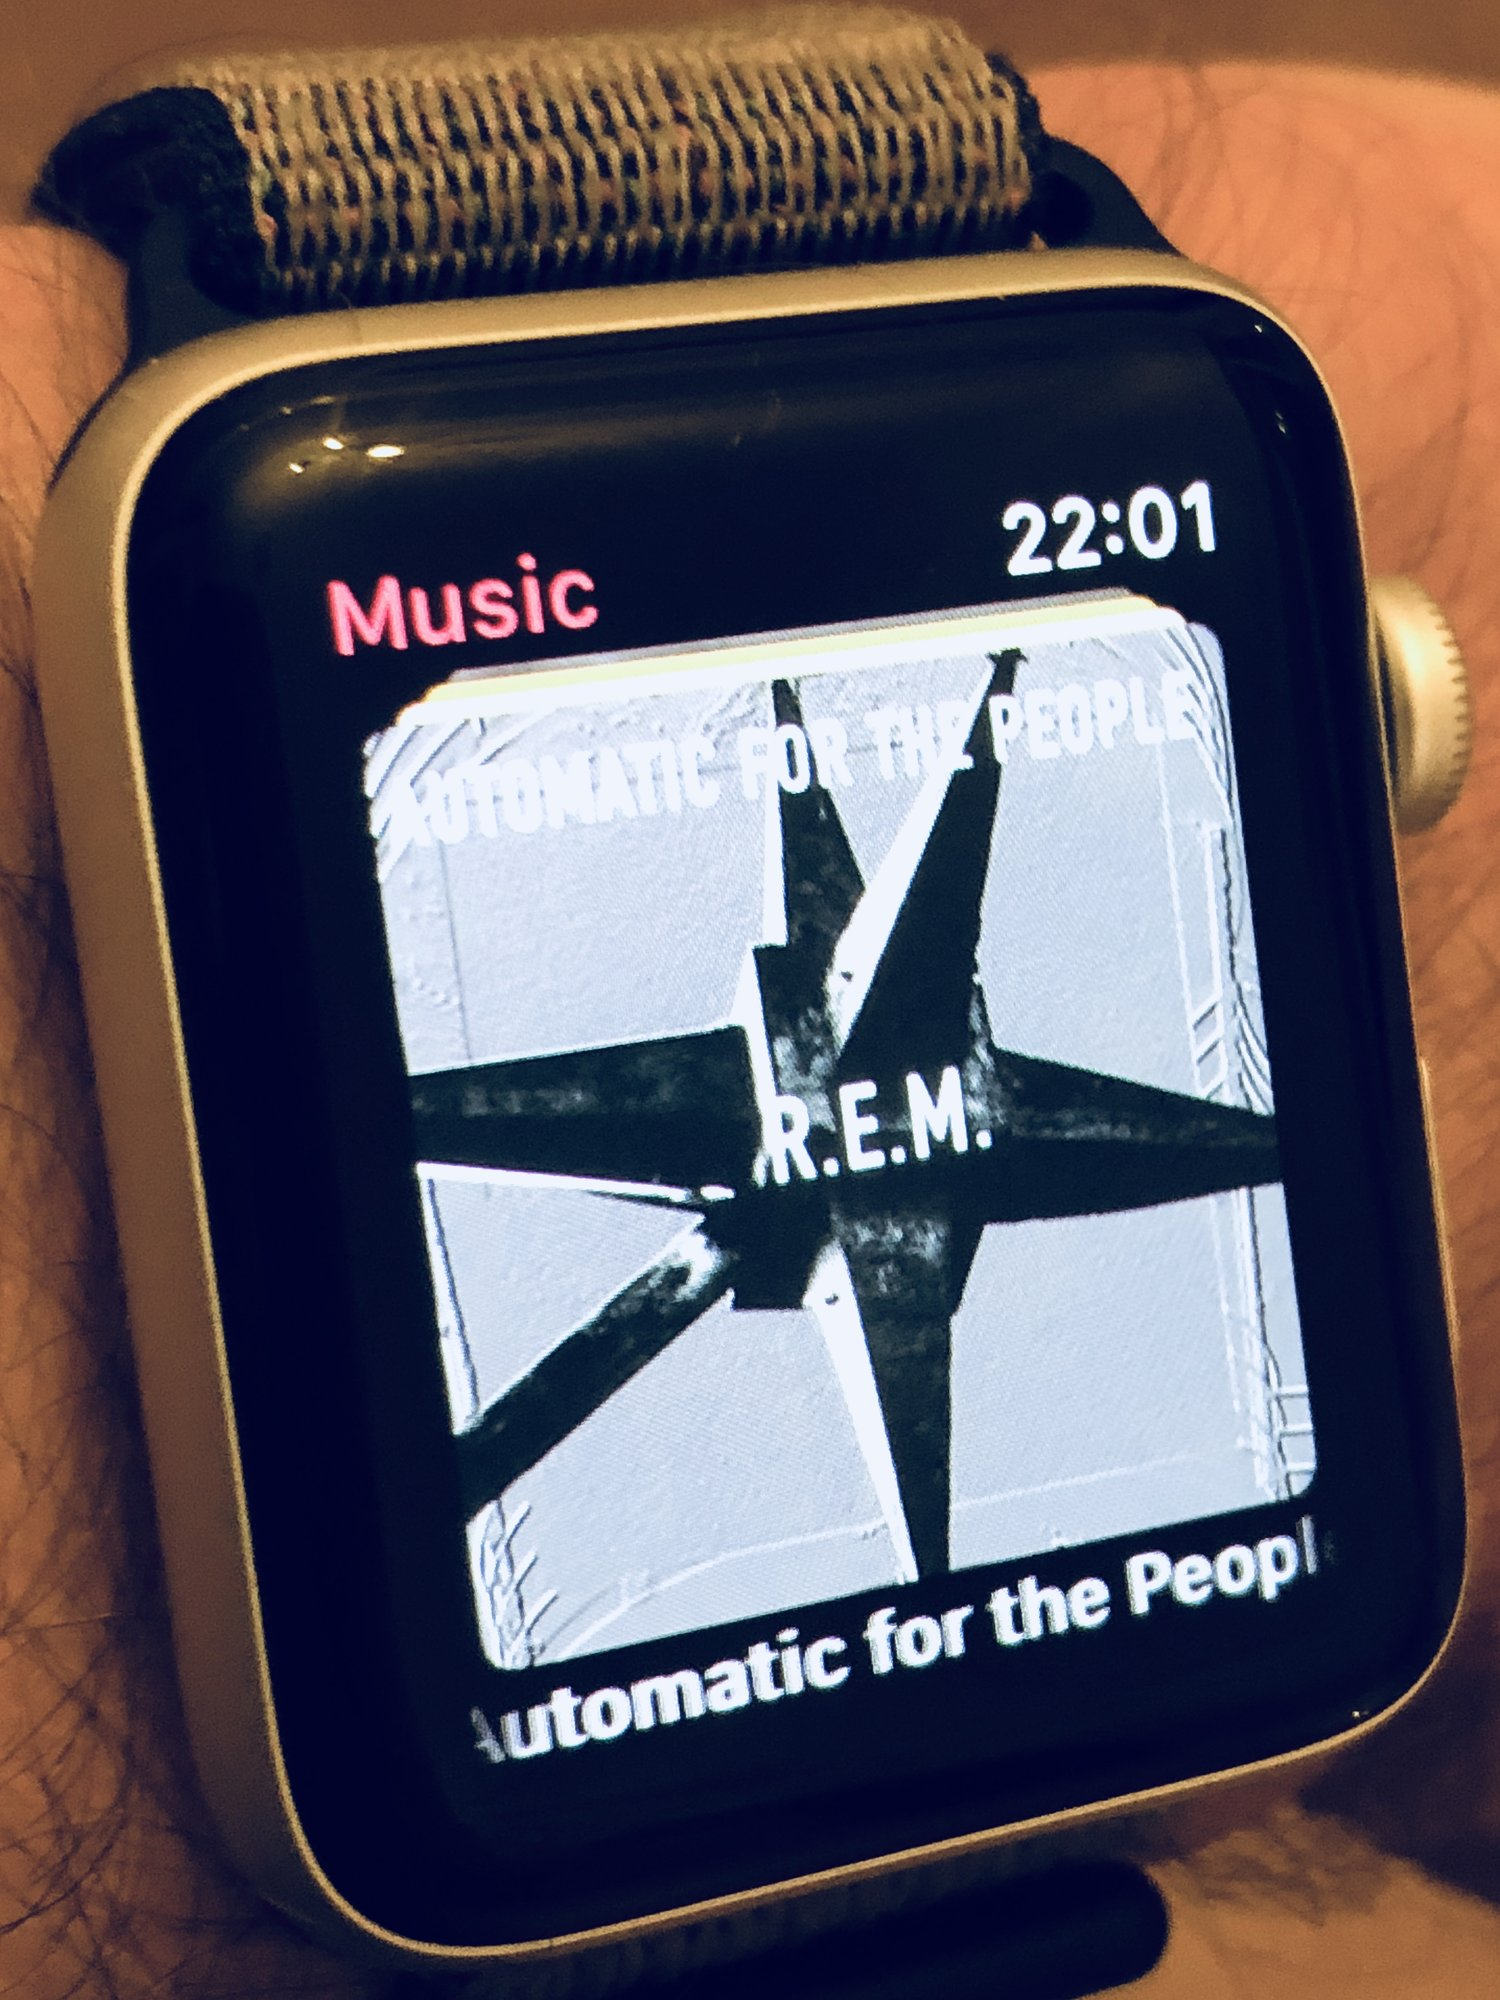 How to Run with Music with Apple Watch — The Apple Watch Triathlete